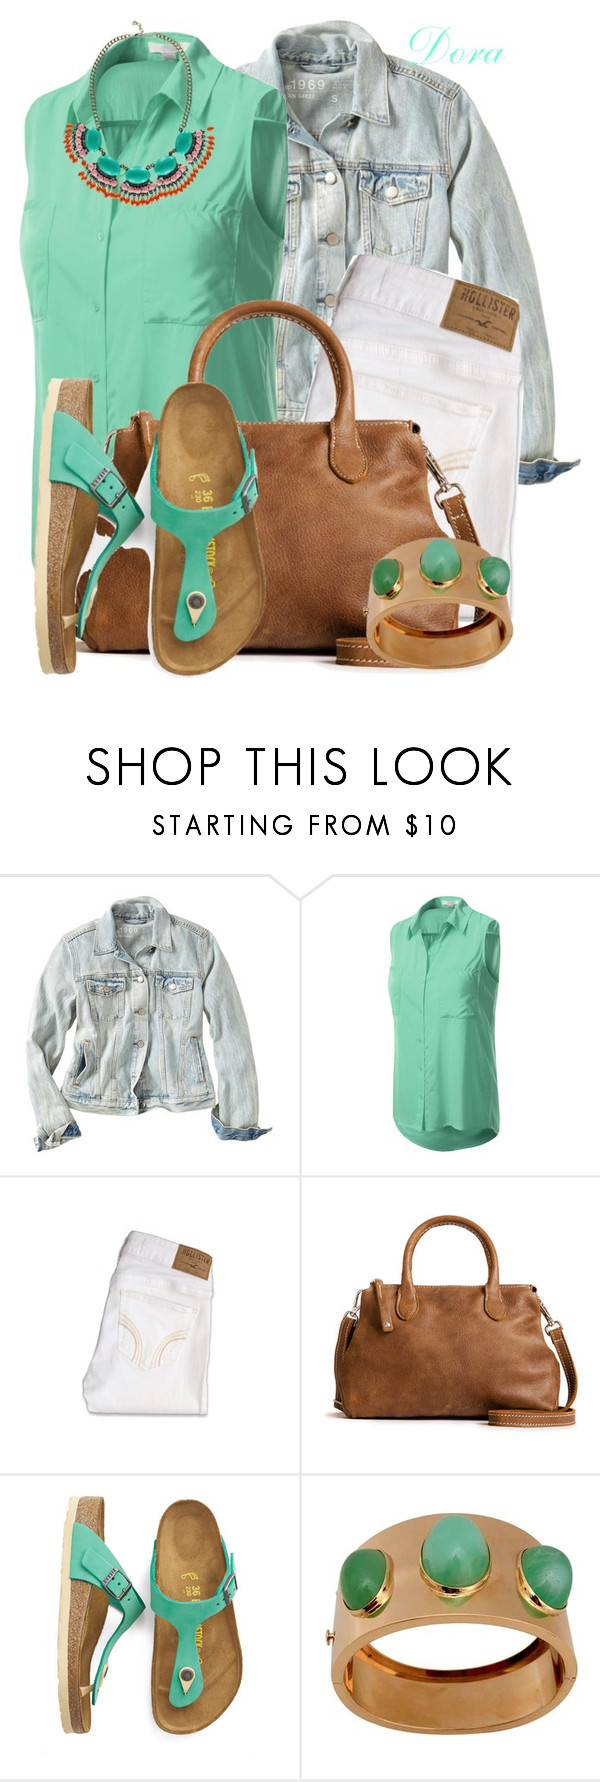 """Birkenstock"" by doradabrowska ❤ liked on Polyvore featuring Gap, J.TOMSON, Hollister Co., Birkenstock and Boohoo"